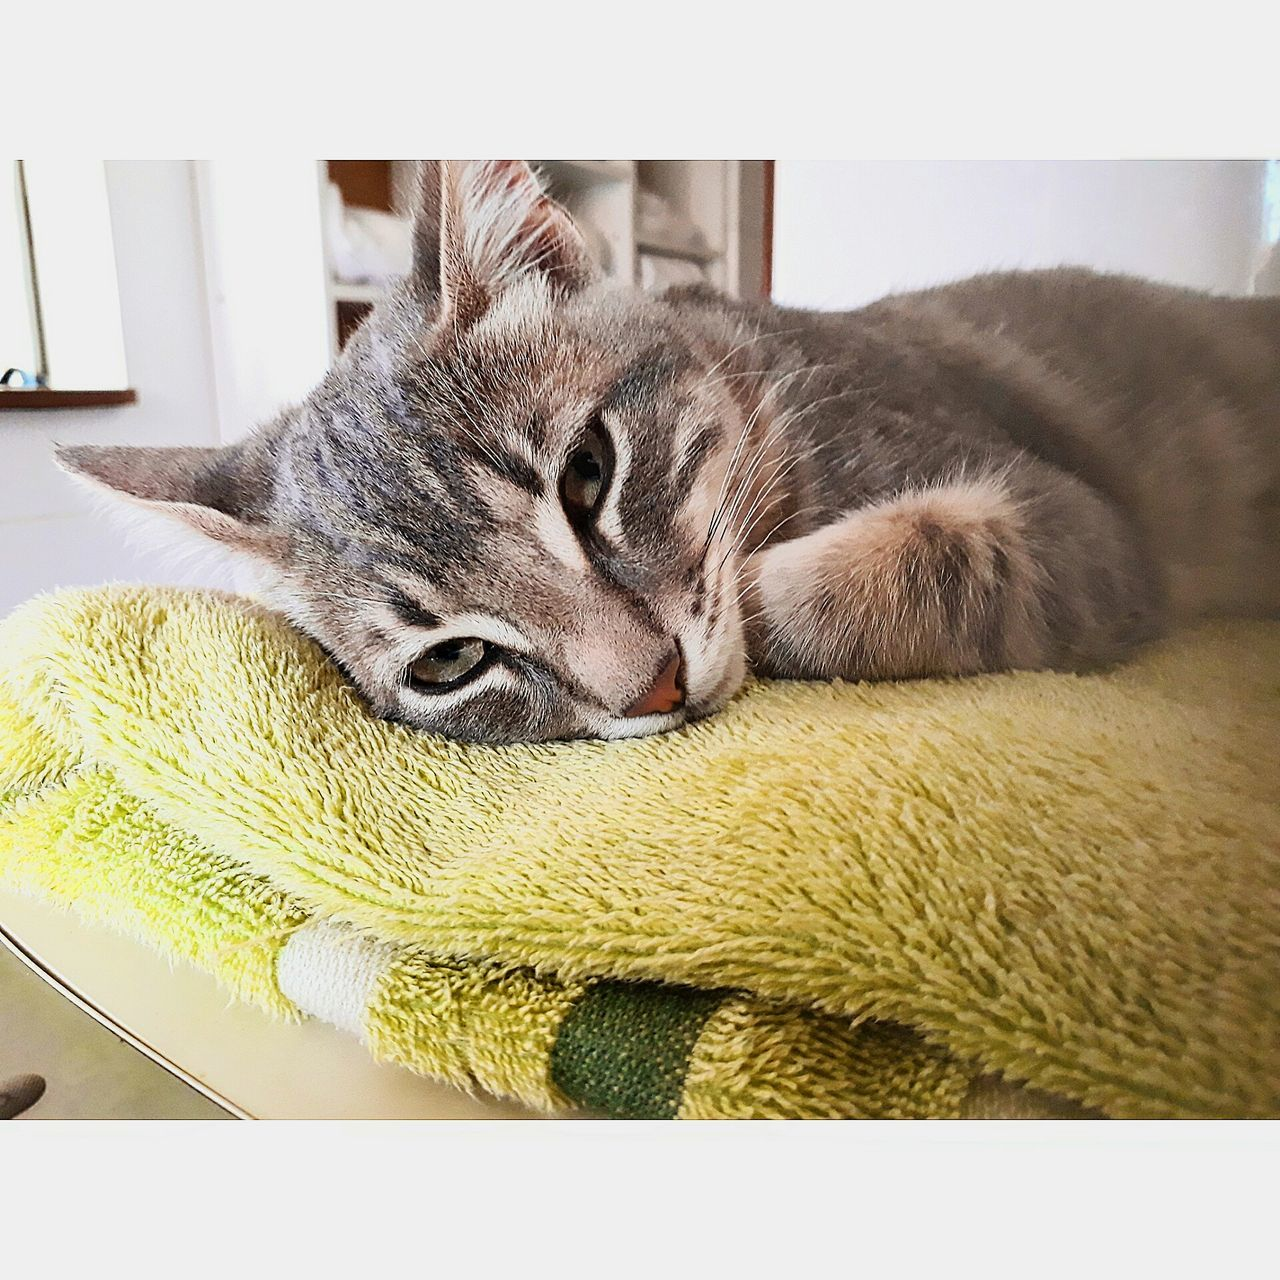 Bebé León 🐱. One Animal Pets Domestic Cat Feline Chilena Love Photography Instachile Cat Cats Catsofinstagram Cat Lovers Cat Photography Sleeping Sleepy Sleep Sleeping Cat Love Lovecats Babycats ❤️ Happy Happyness